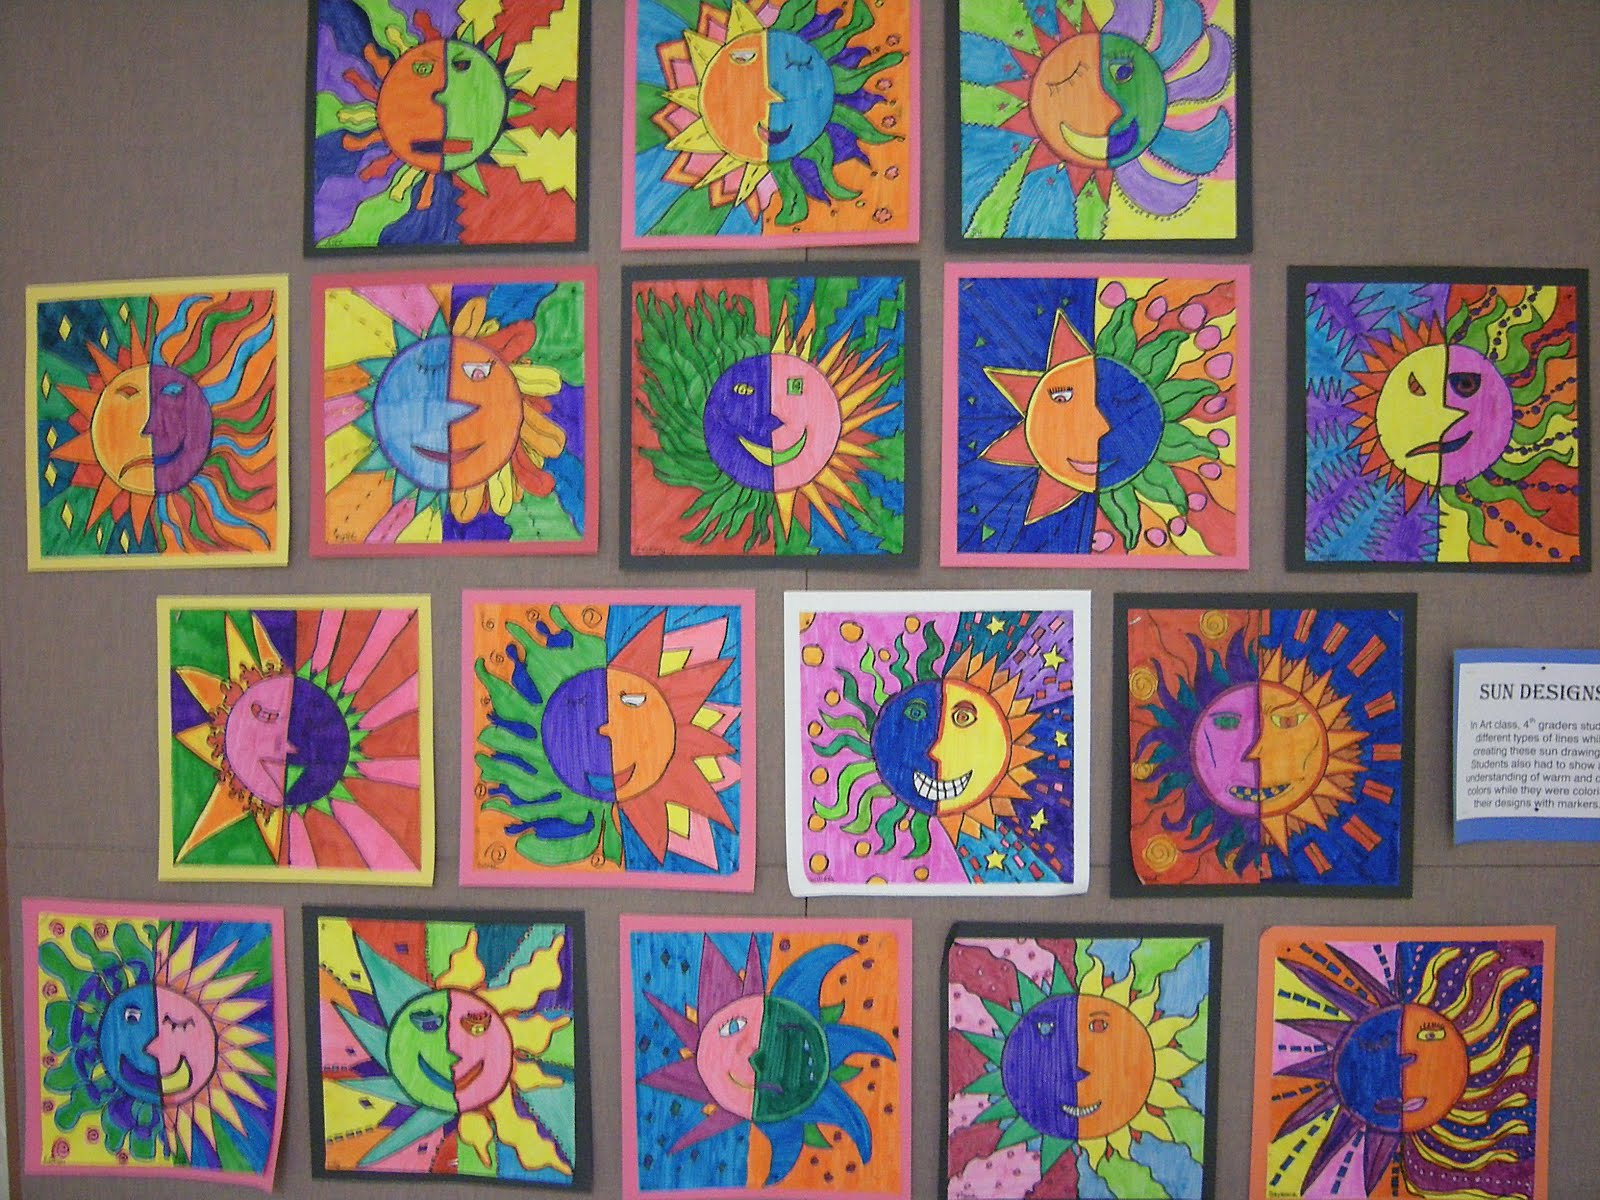 Different Types Of Lines In Art Drawing : Artolazzi warm cool suns